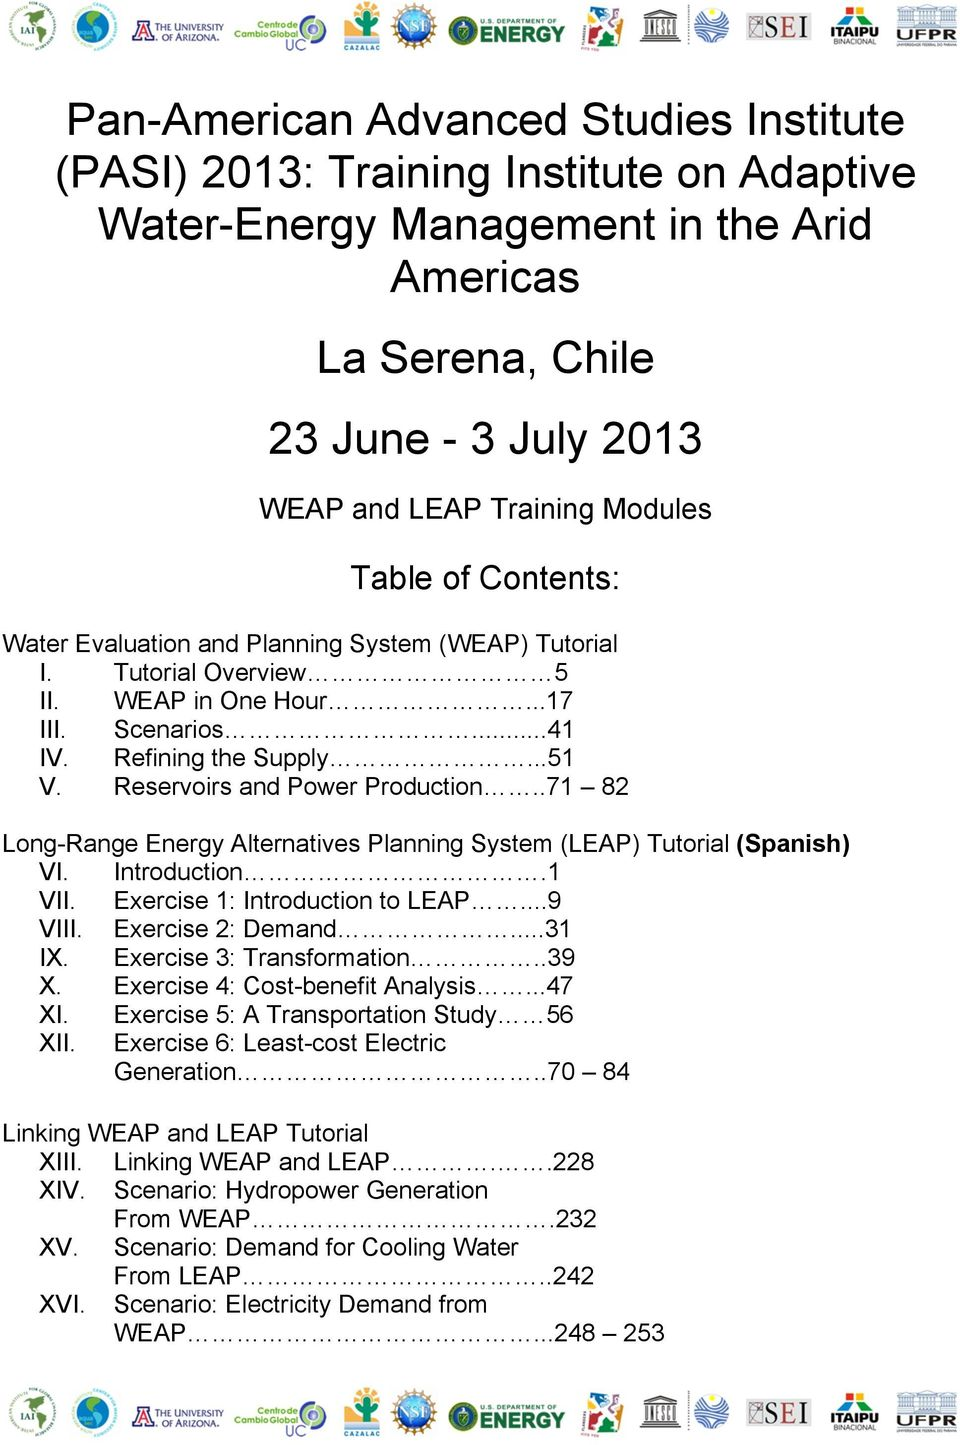 Reservoirs and Power Production..71 82 Long-Range Energy Alternatives Planning System (LEAP) Tutorial (Spanish) VI. Introduction.1 VII. Exercise 1: Introduction to LEAP...9 VIII. Exercise 2: Demand.